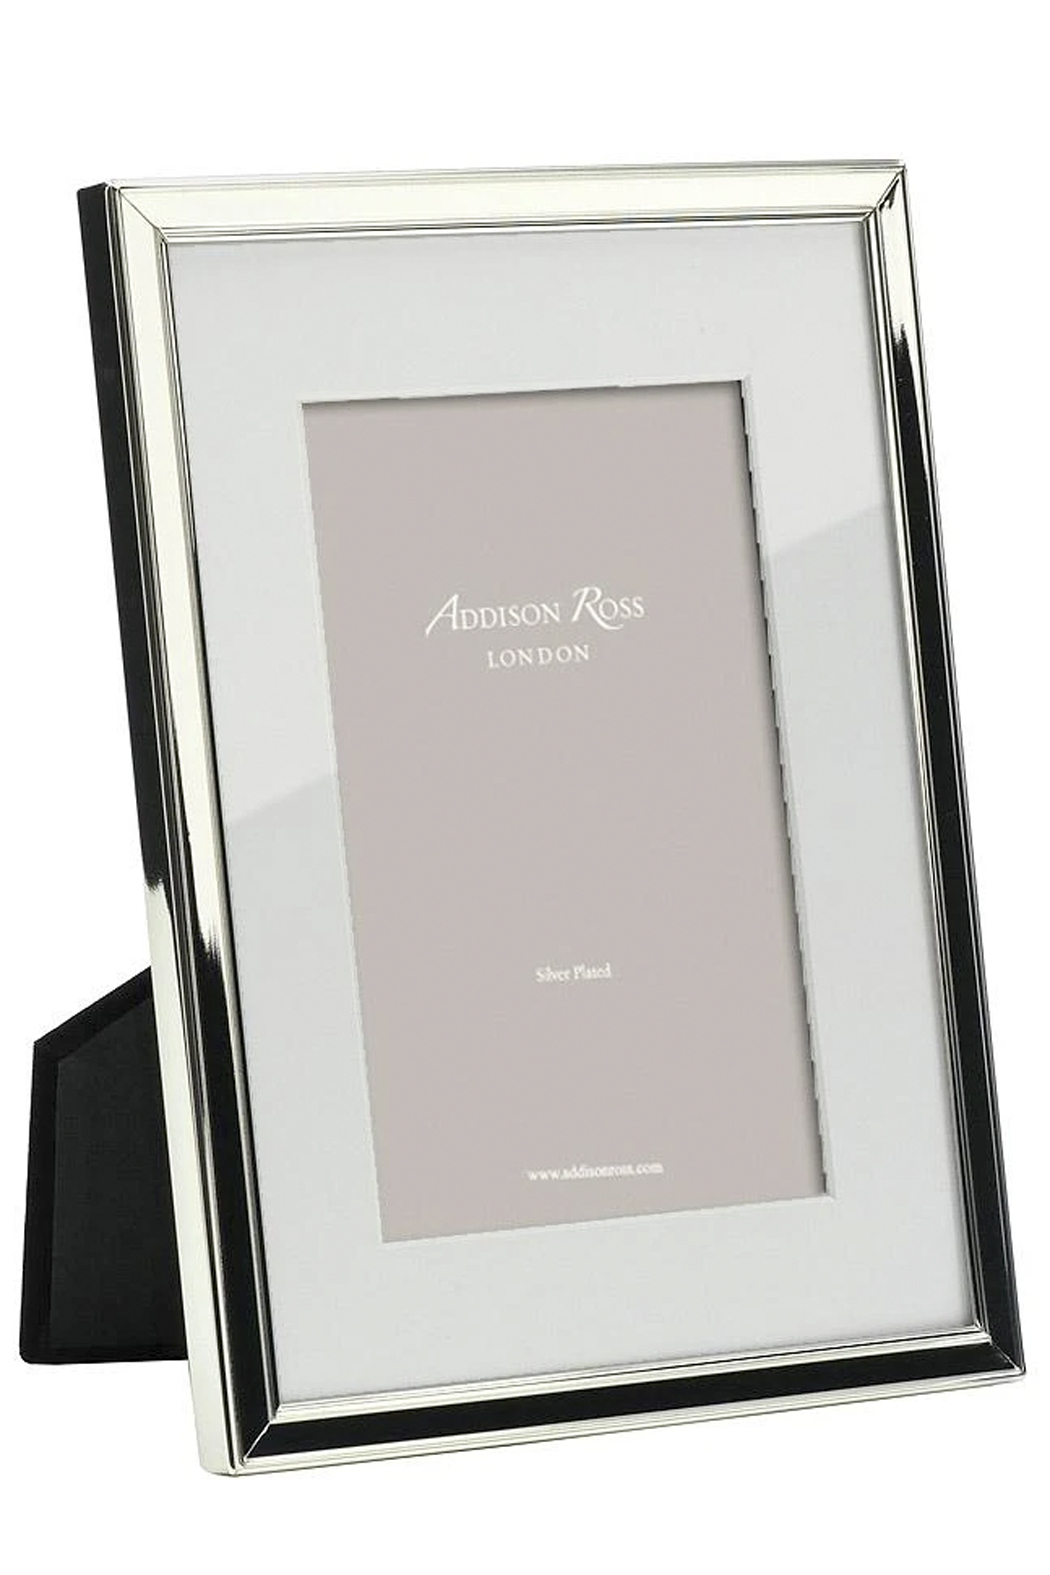 Addison Ross 4x6 Silver Frame With Mount - Main Image